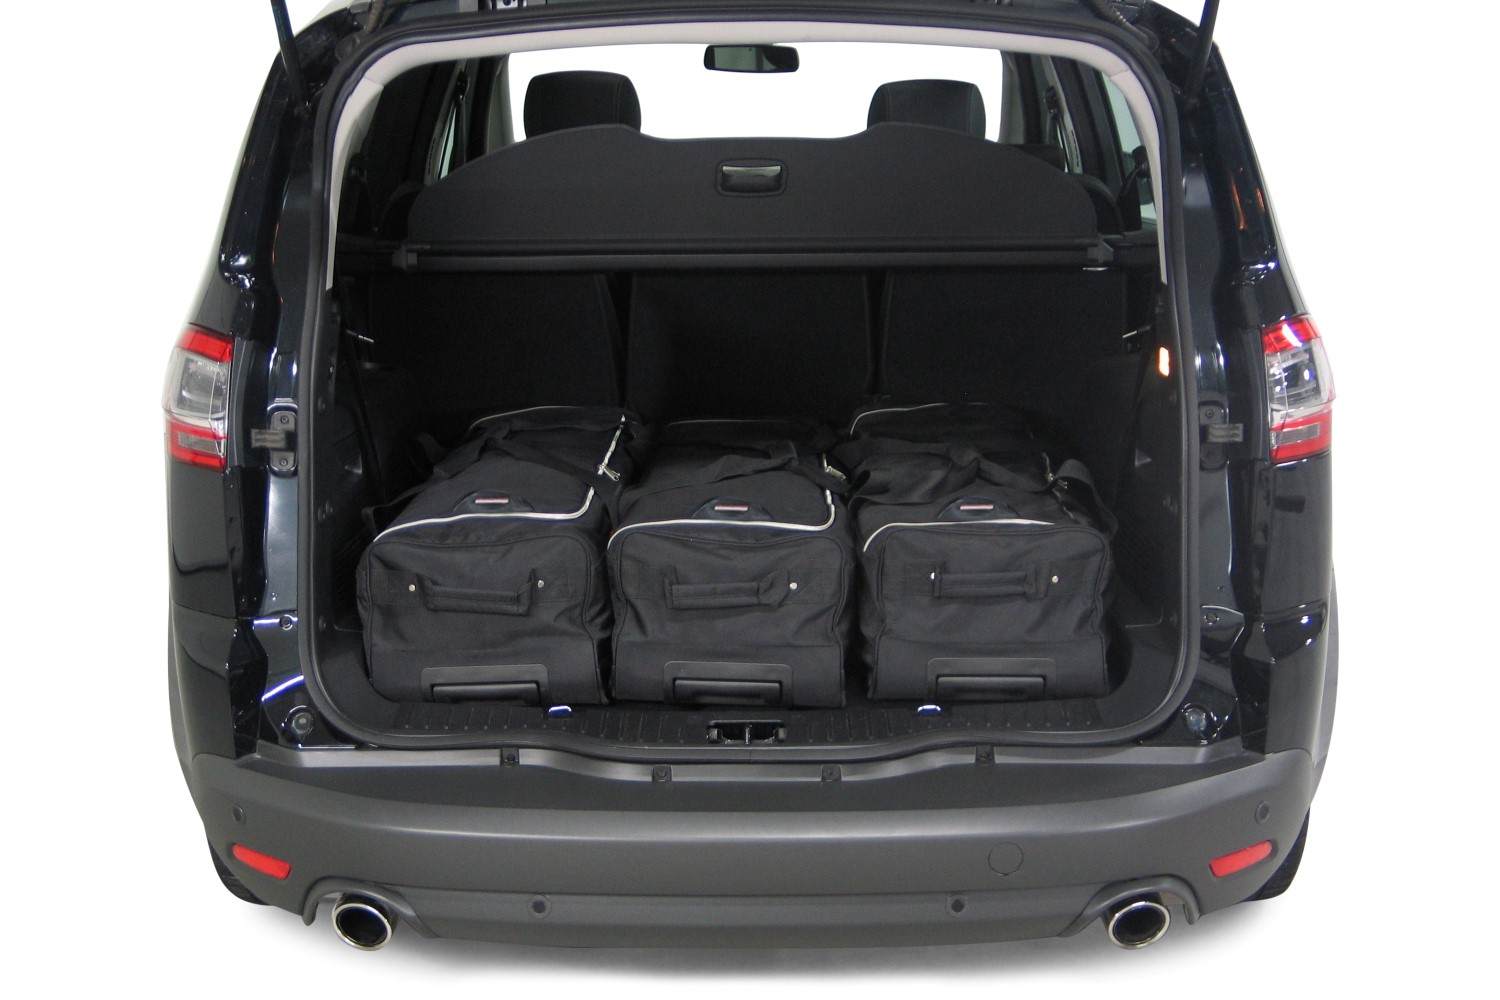 s max ford s max i 2006 2015 car bags reisetaschen. Black Bedroom Furniture Sets. Home Design Ideas